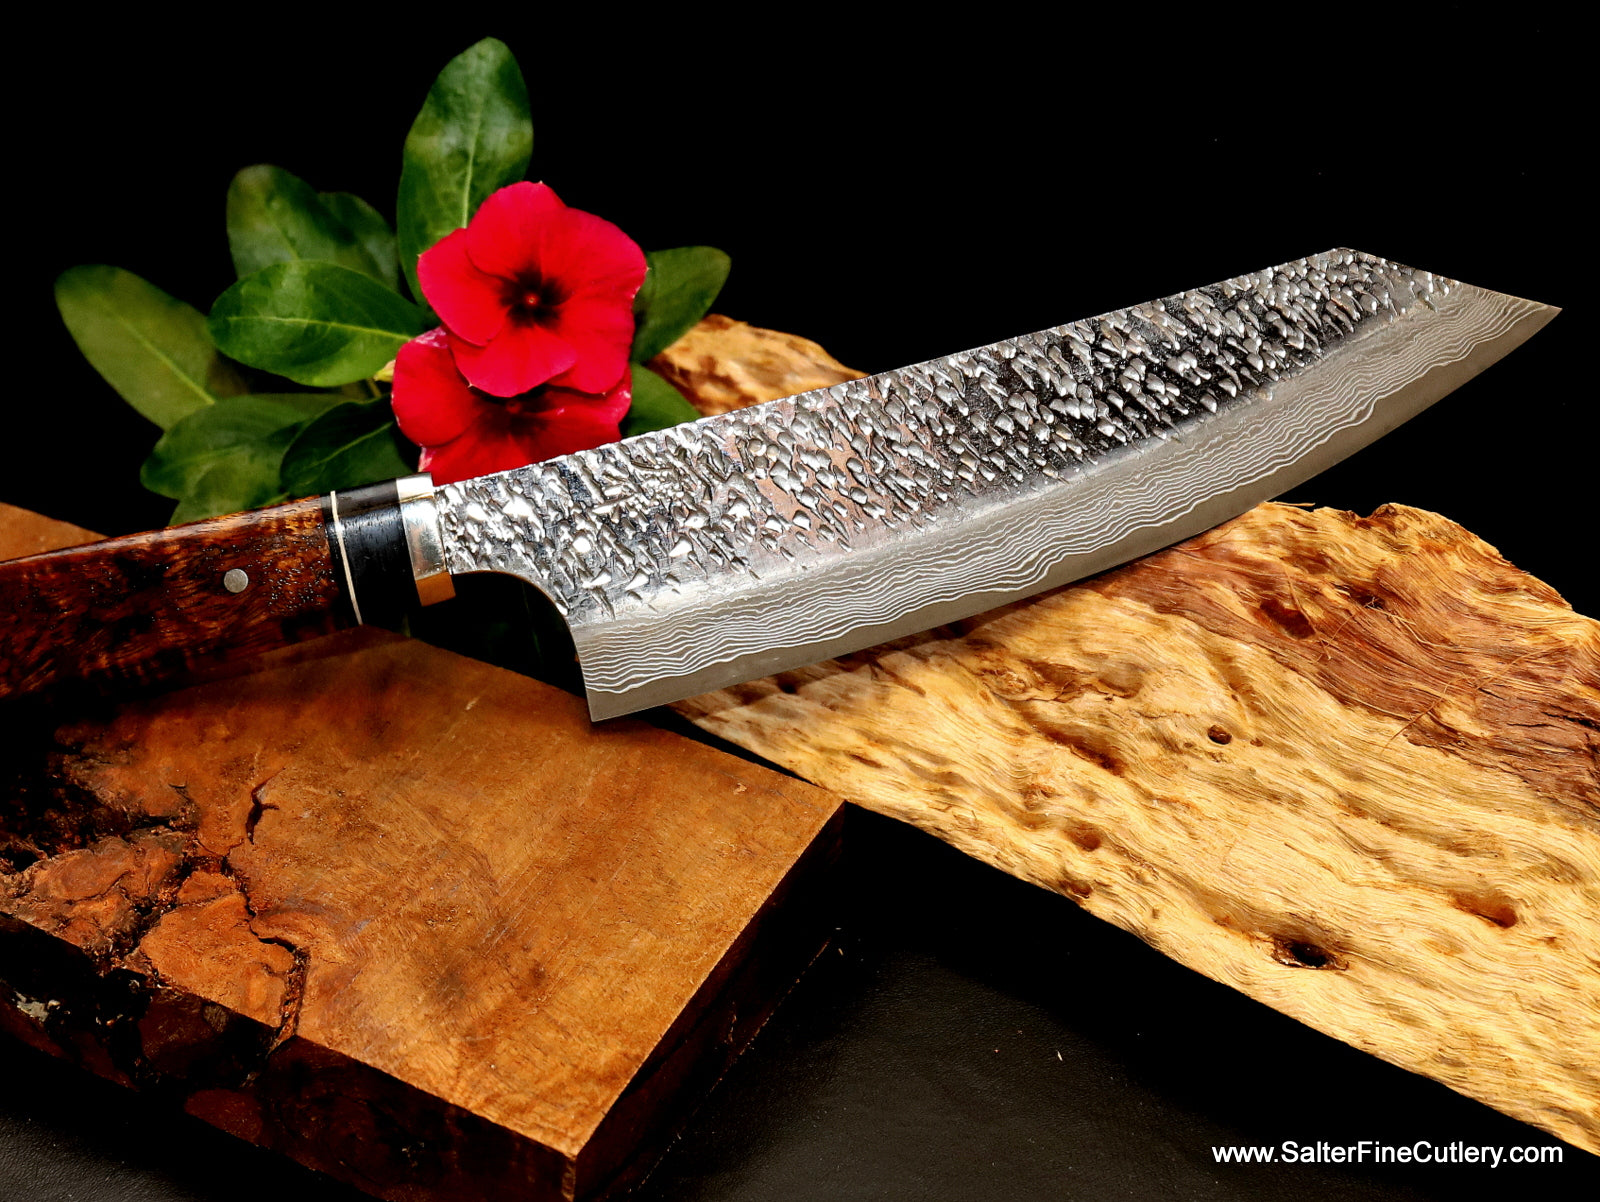 Raptor design series chef knives available as individual knives or in sets from Salter Fine Cutlery of Hawaii